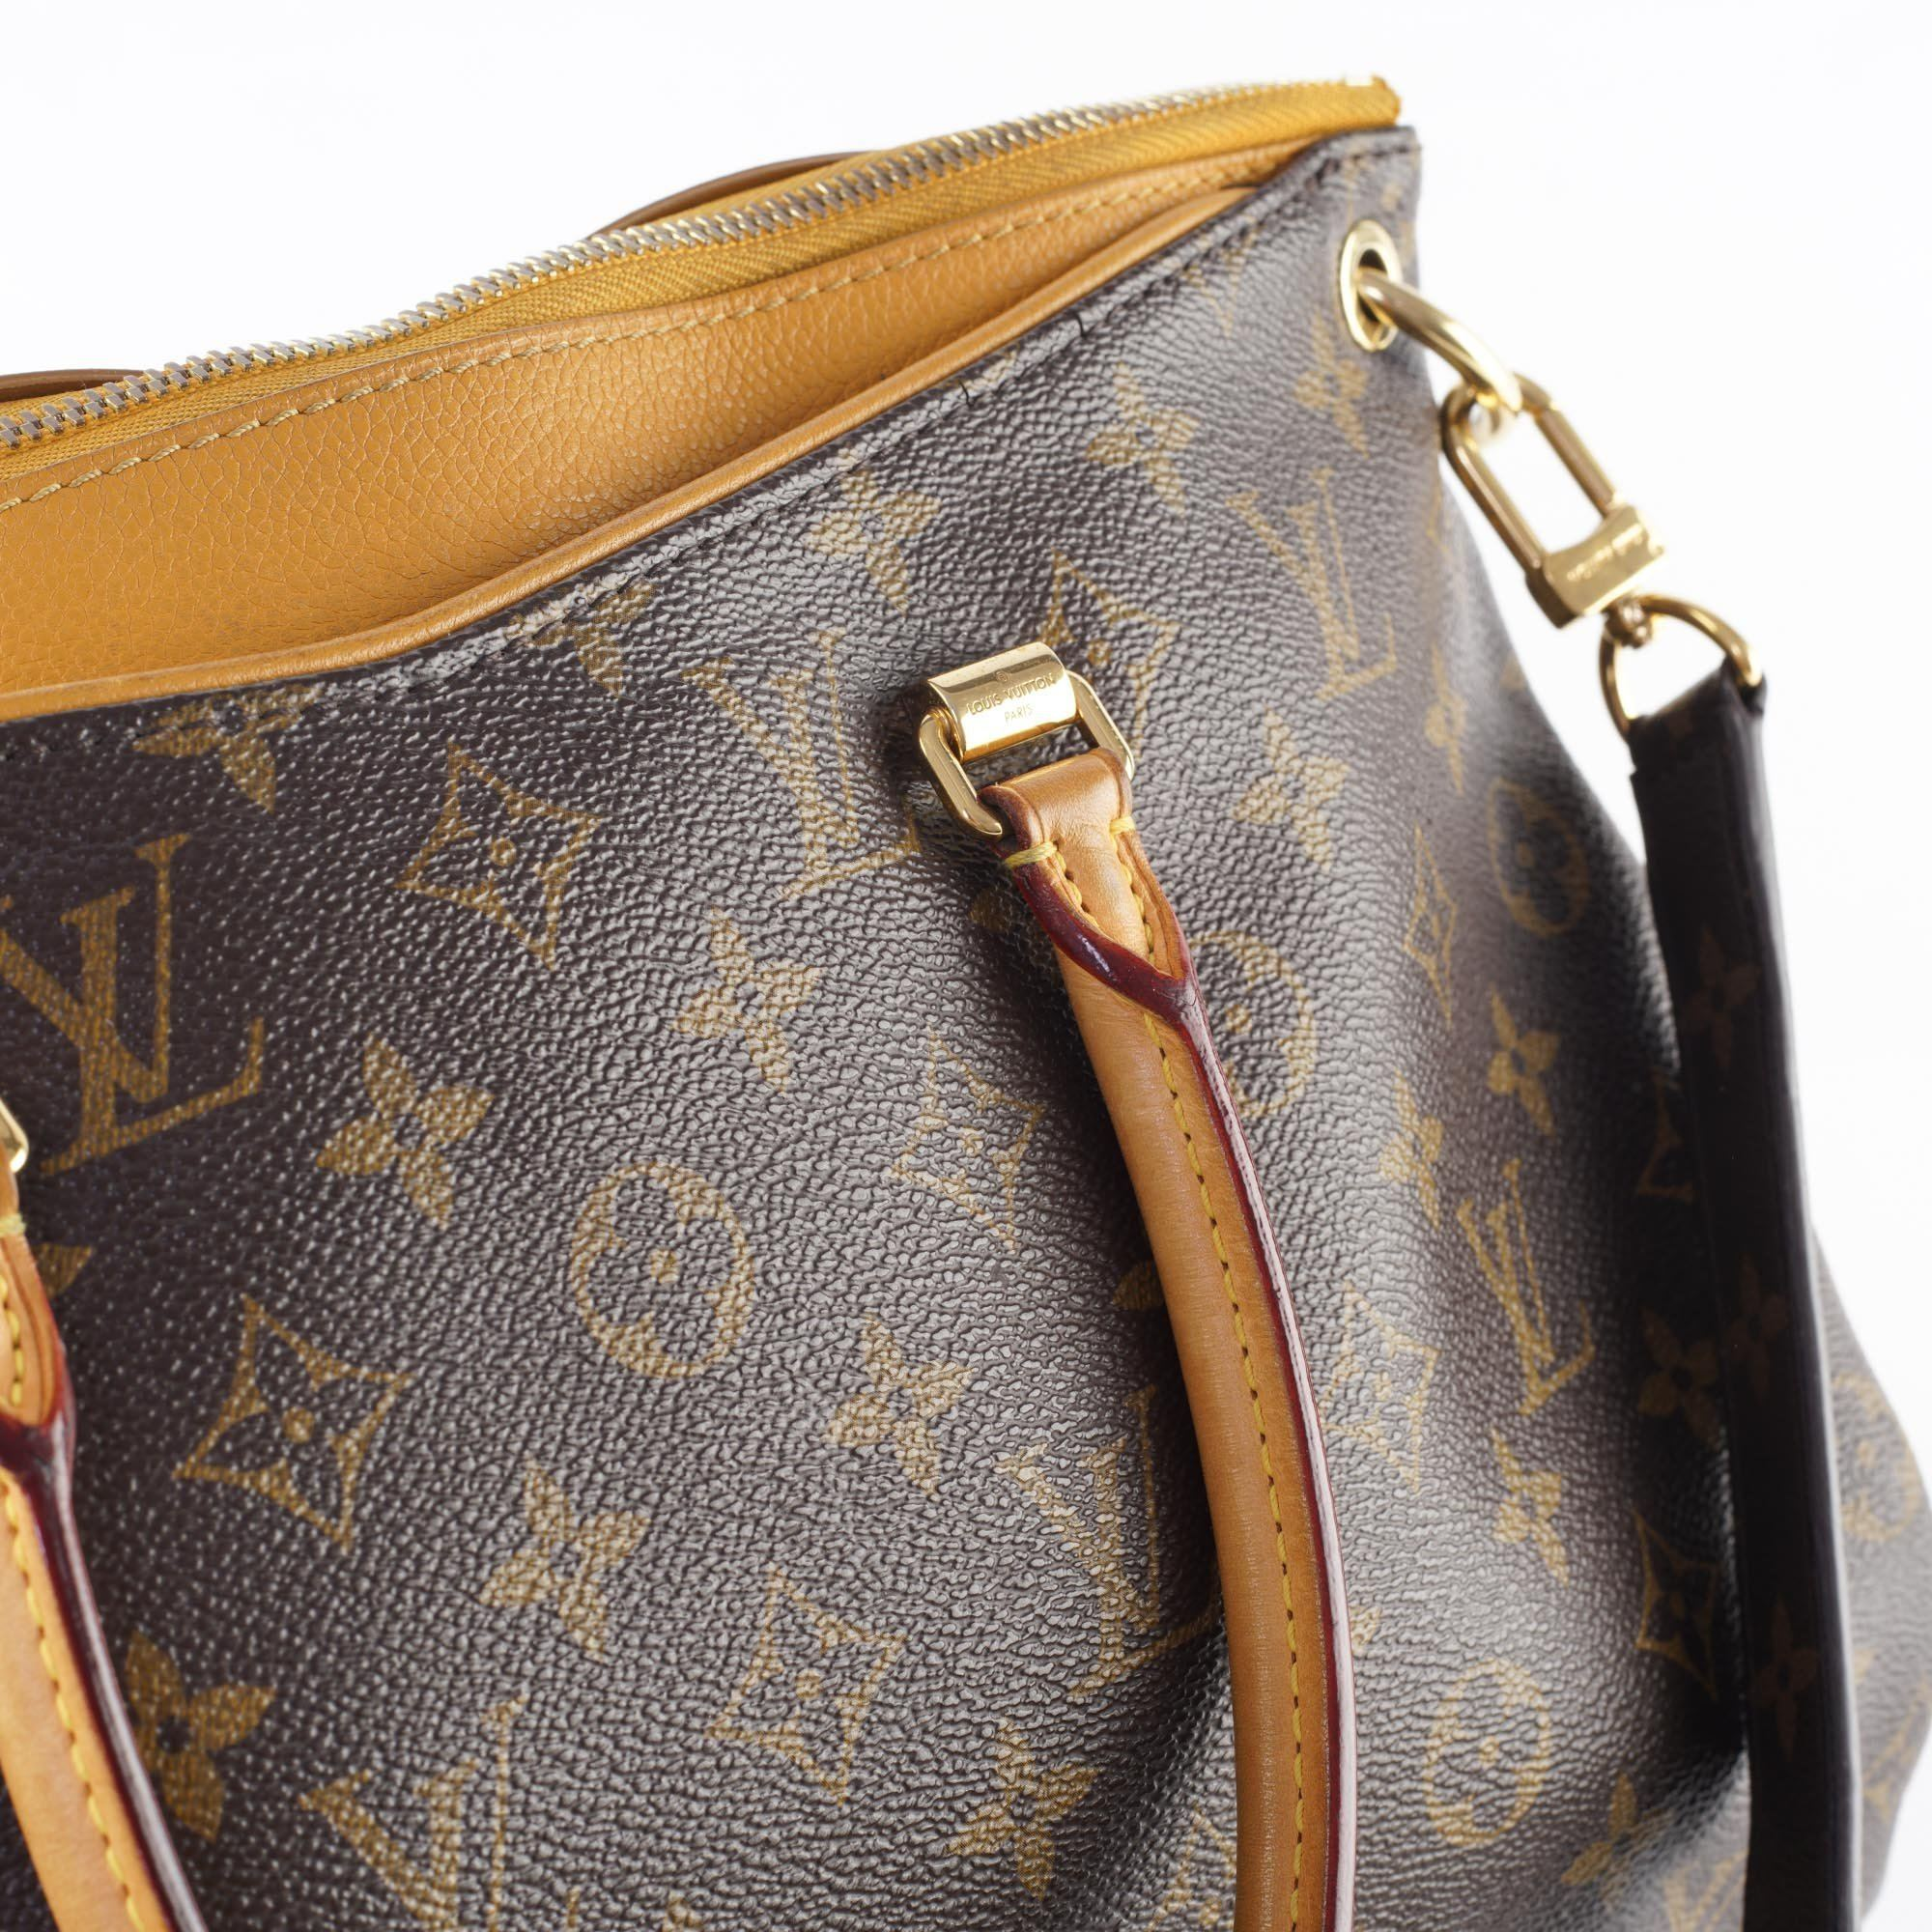 Louis Vuitton Safran Monogram Canvas Pallas Bag